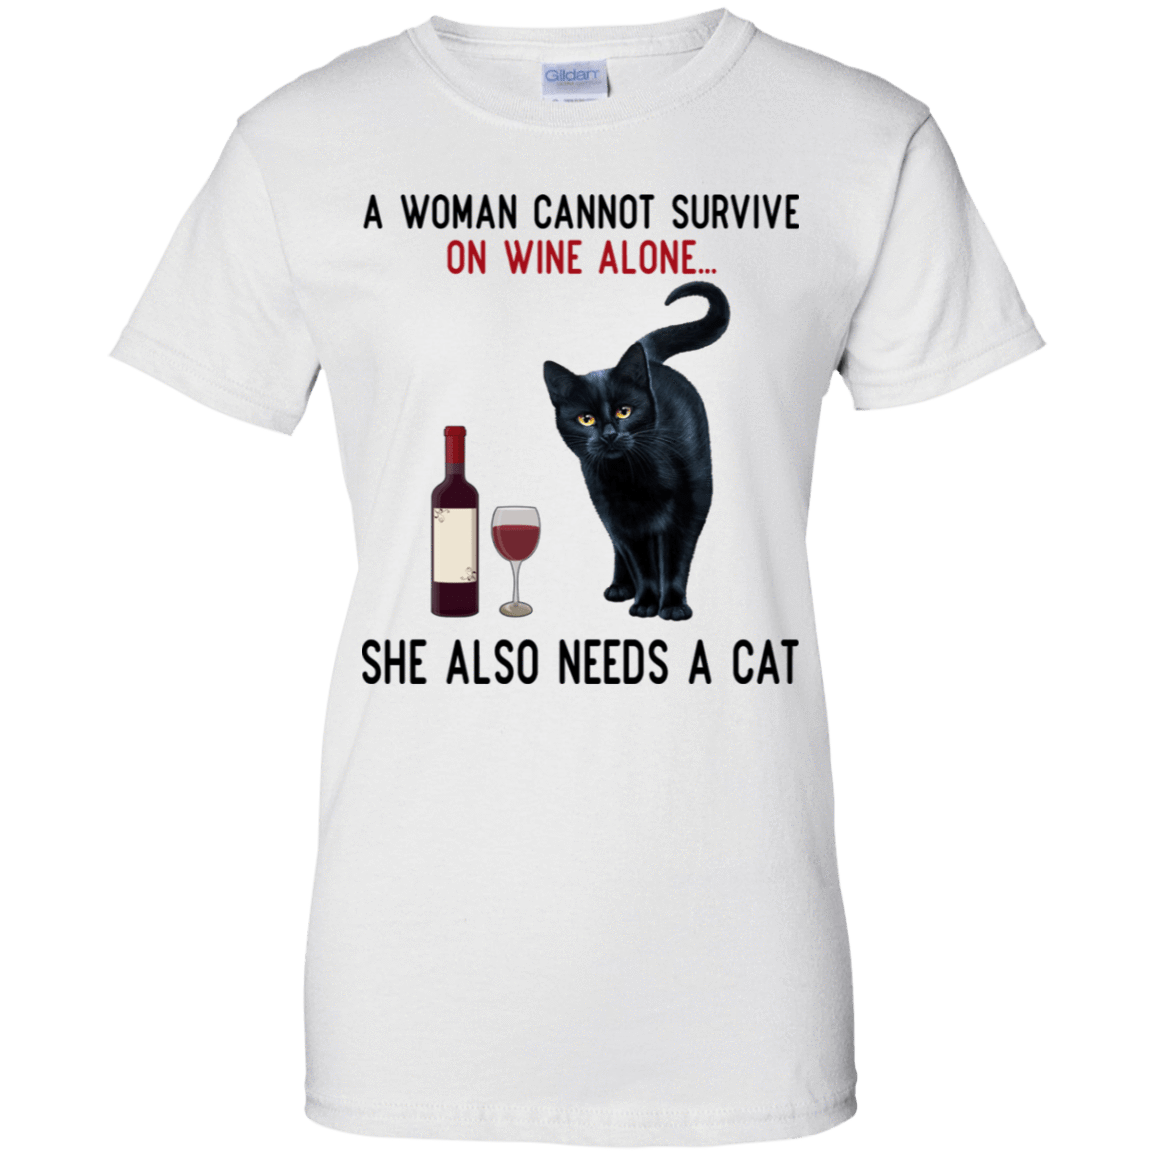 A Woman Cannot Survive On Wine Alone She Also Need A Cat T-Shirts, Hoodies 939-9247-77528899-44814 - Tee Ript